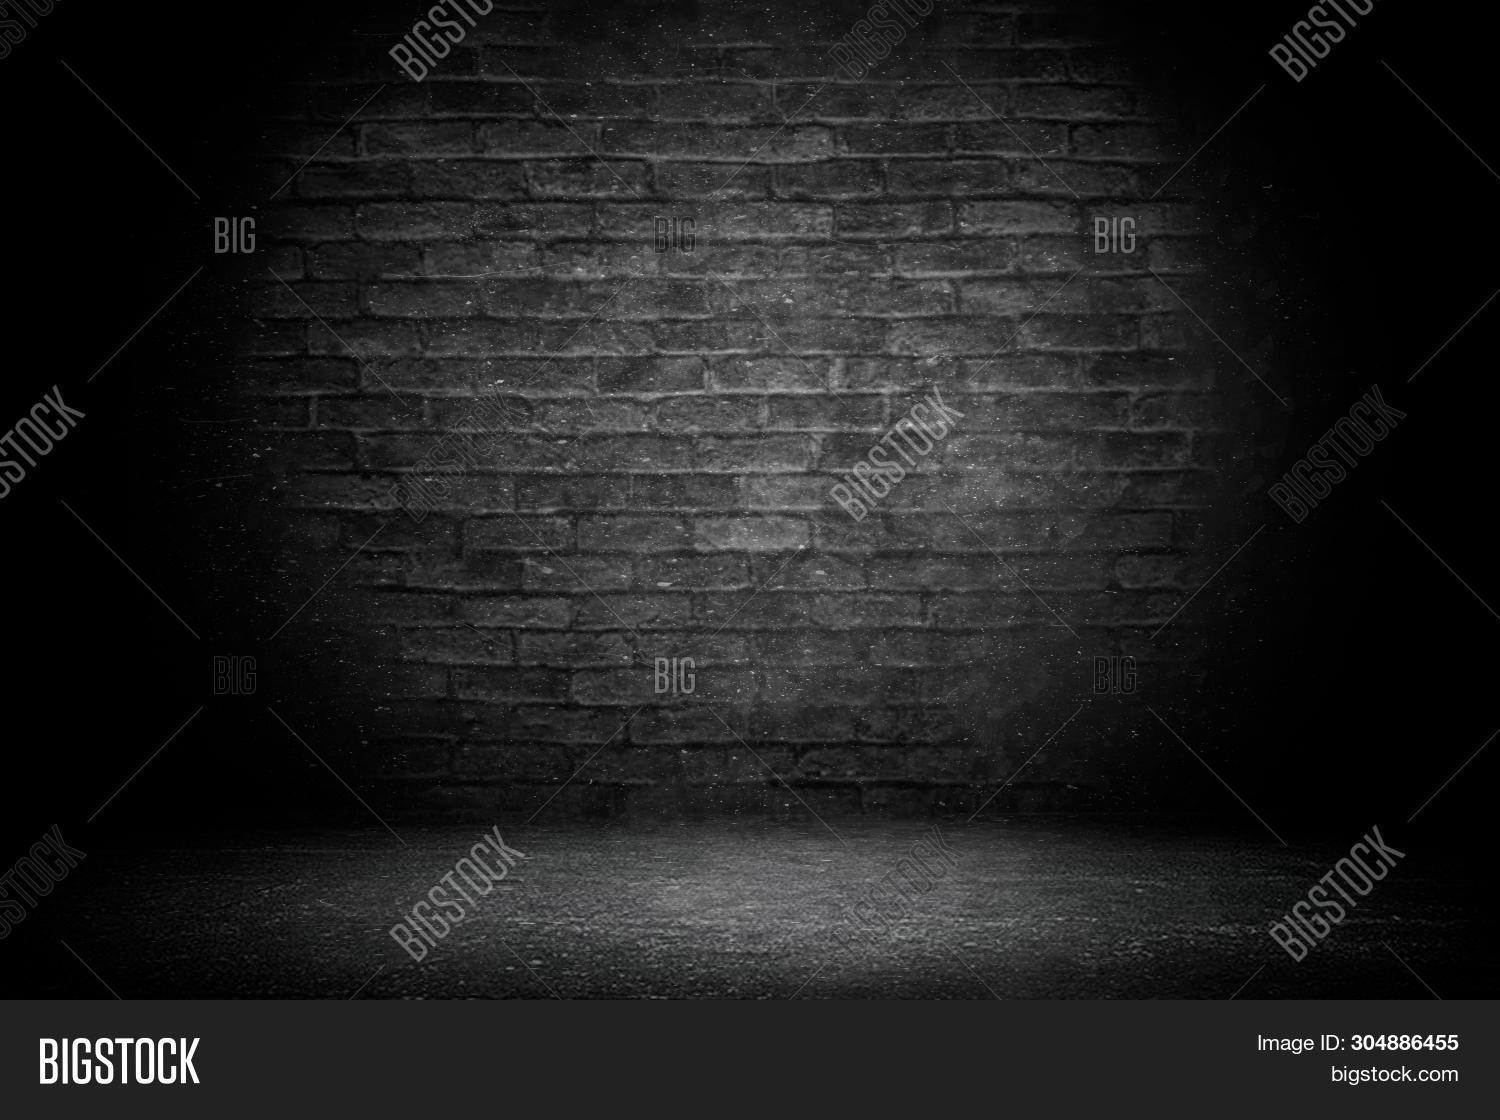 abstract,ancient,architecture,backdrop,background,banner,black,block,blue,border,brick,brickwall,brickwork,cement,concrete,crumble,dark,darkly,decay,design,deteriorate,dirty,disintegrate,distressed,empty,exterior,gloomily,gradient,gray,grunge,house,interior,material,old,pattern,retro,room,rough,stone,structure,surface,texture,textured,urban,vignette,vintage,wall,wallpaper,weathered